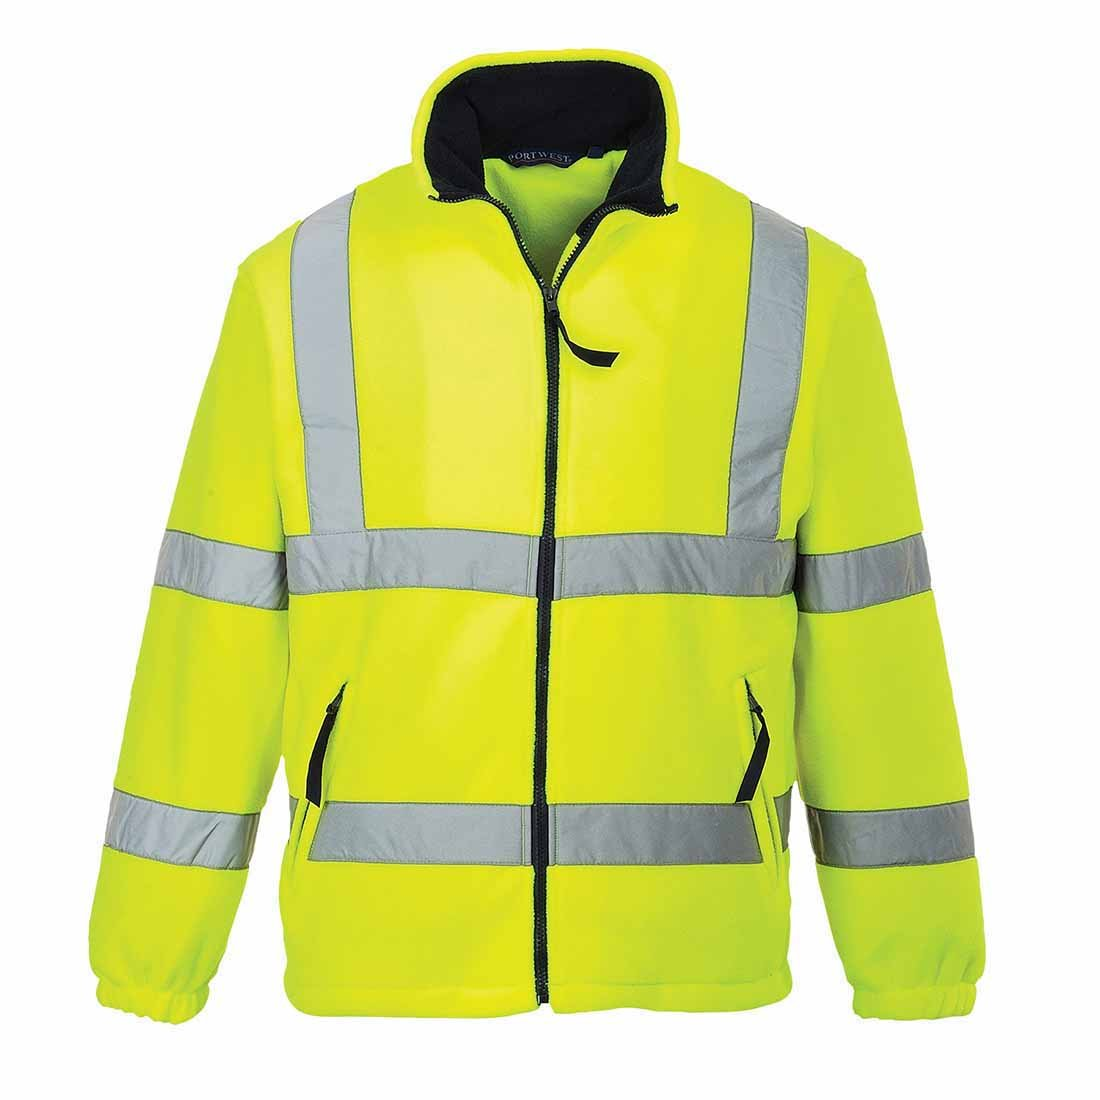 Portwest High Visibility Fleece Jacket Polyester Zip-pockets Medium Yellow Ref F300MED Portwest Clothing